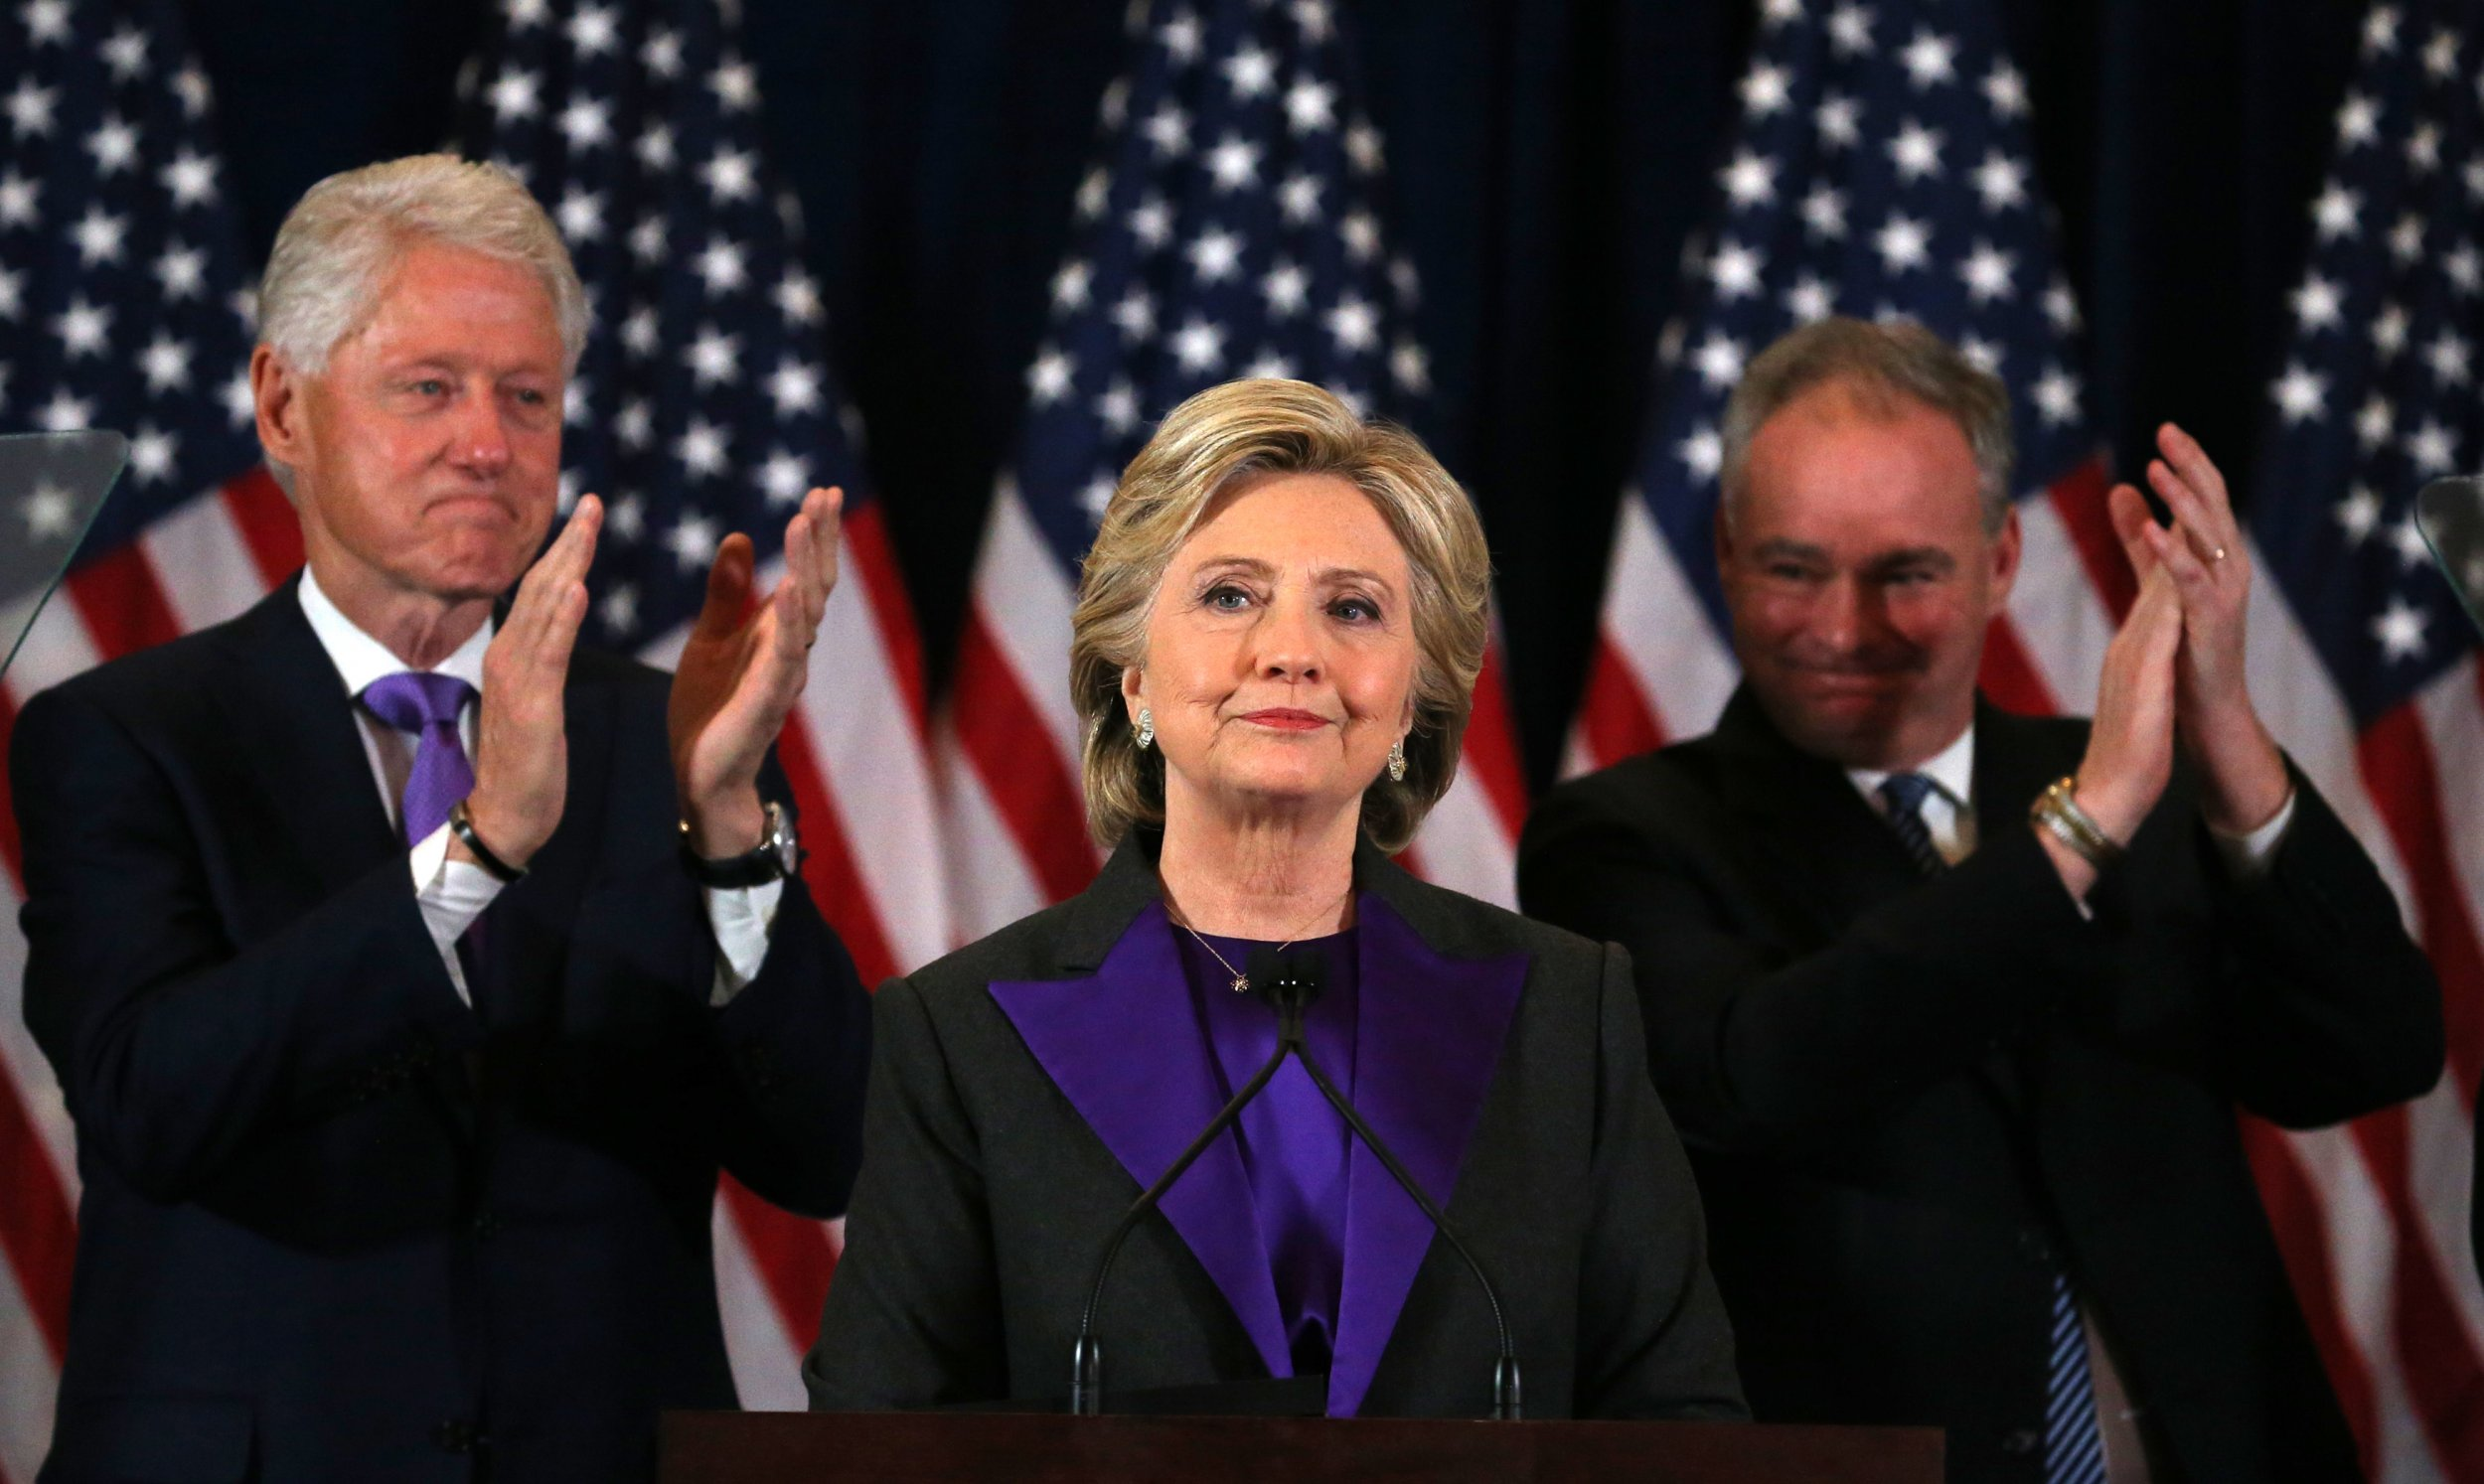 Hillary Clinton concession speech 2016